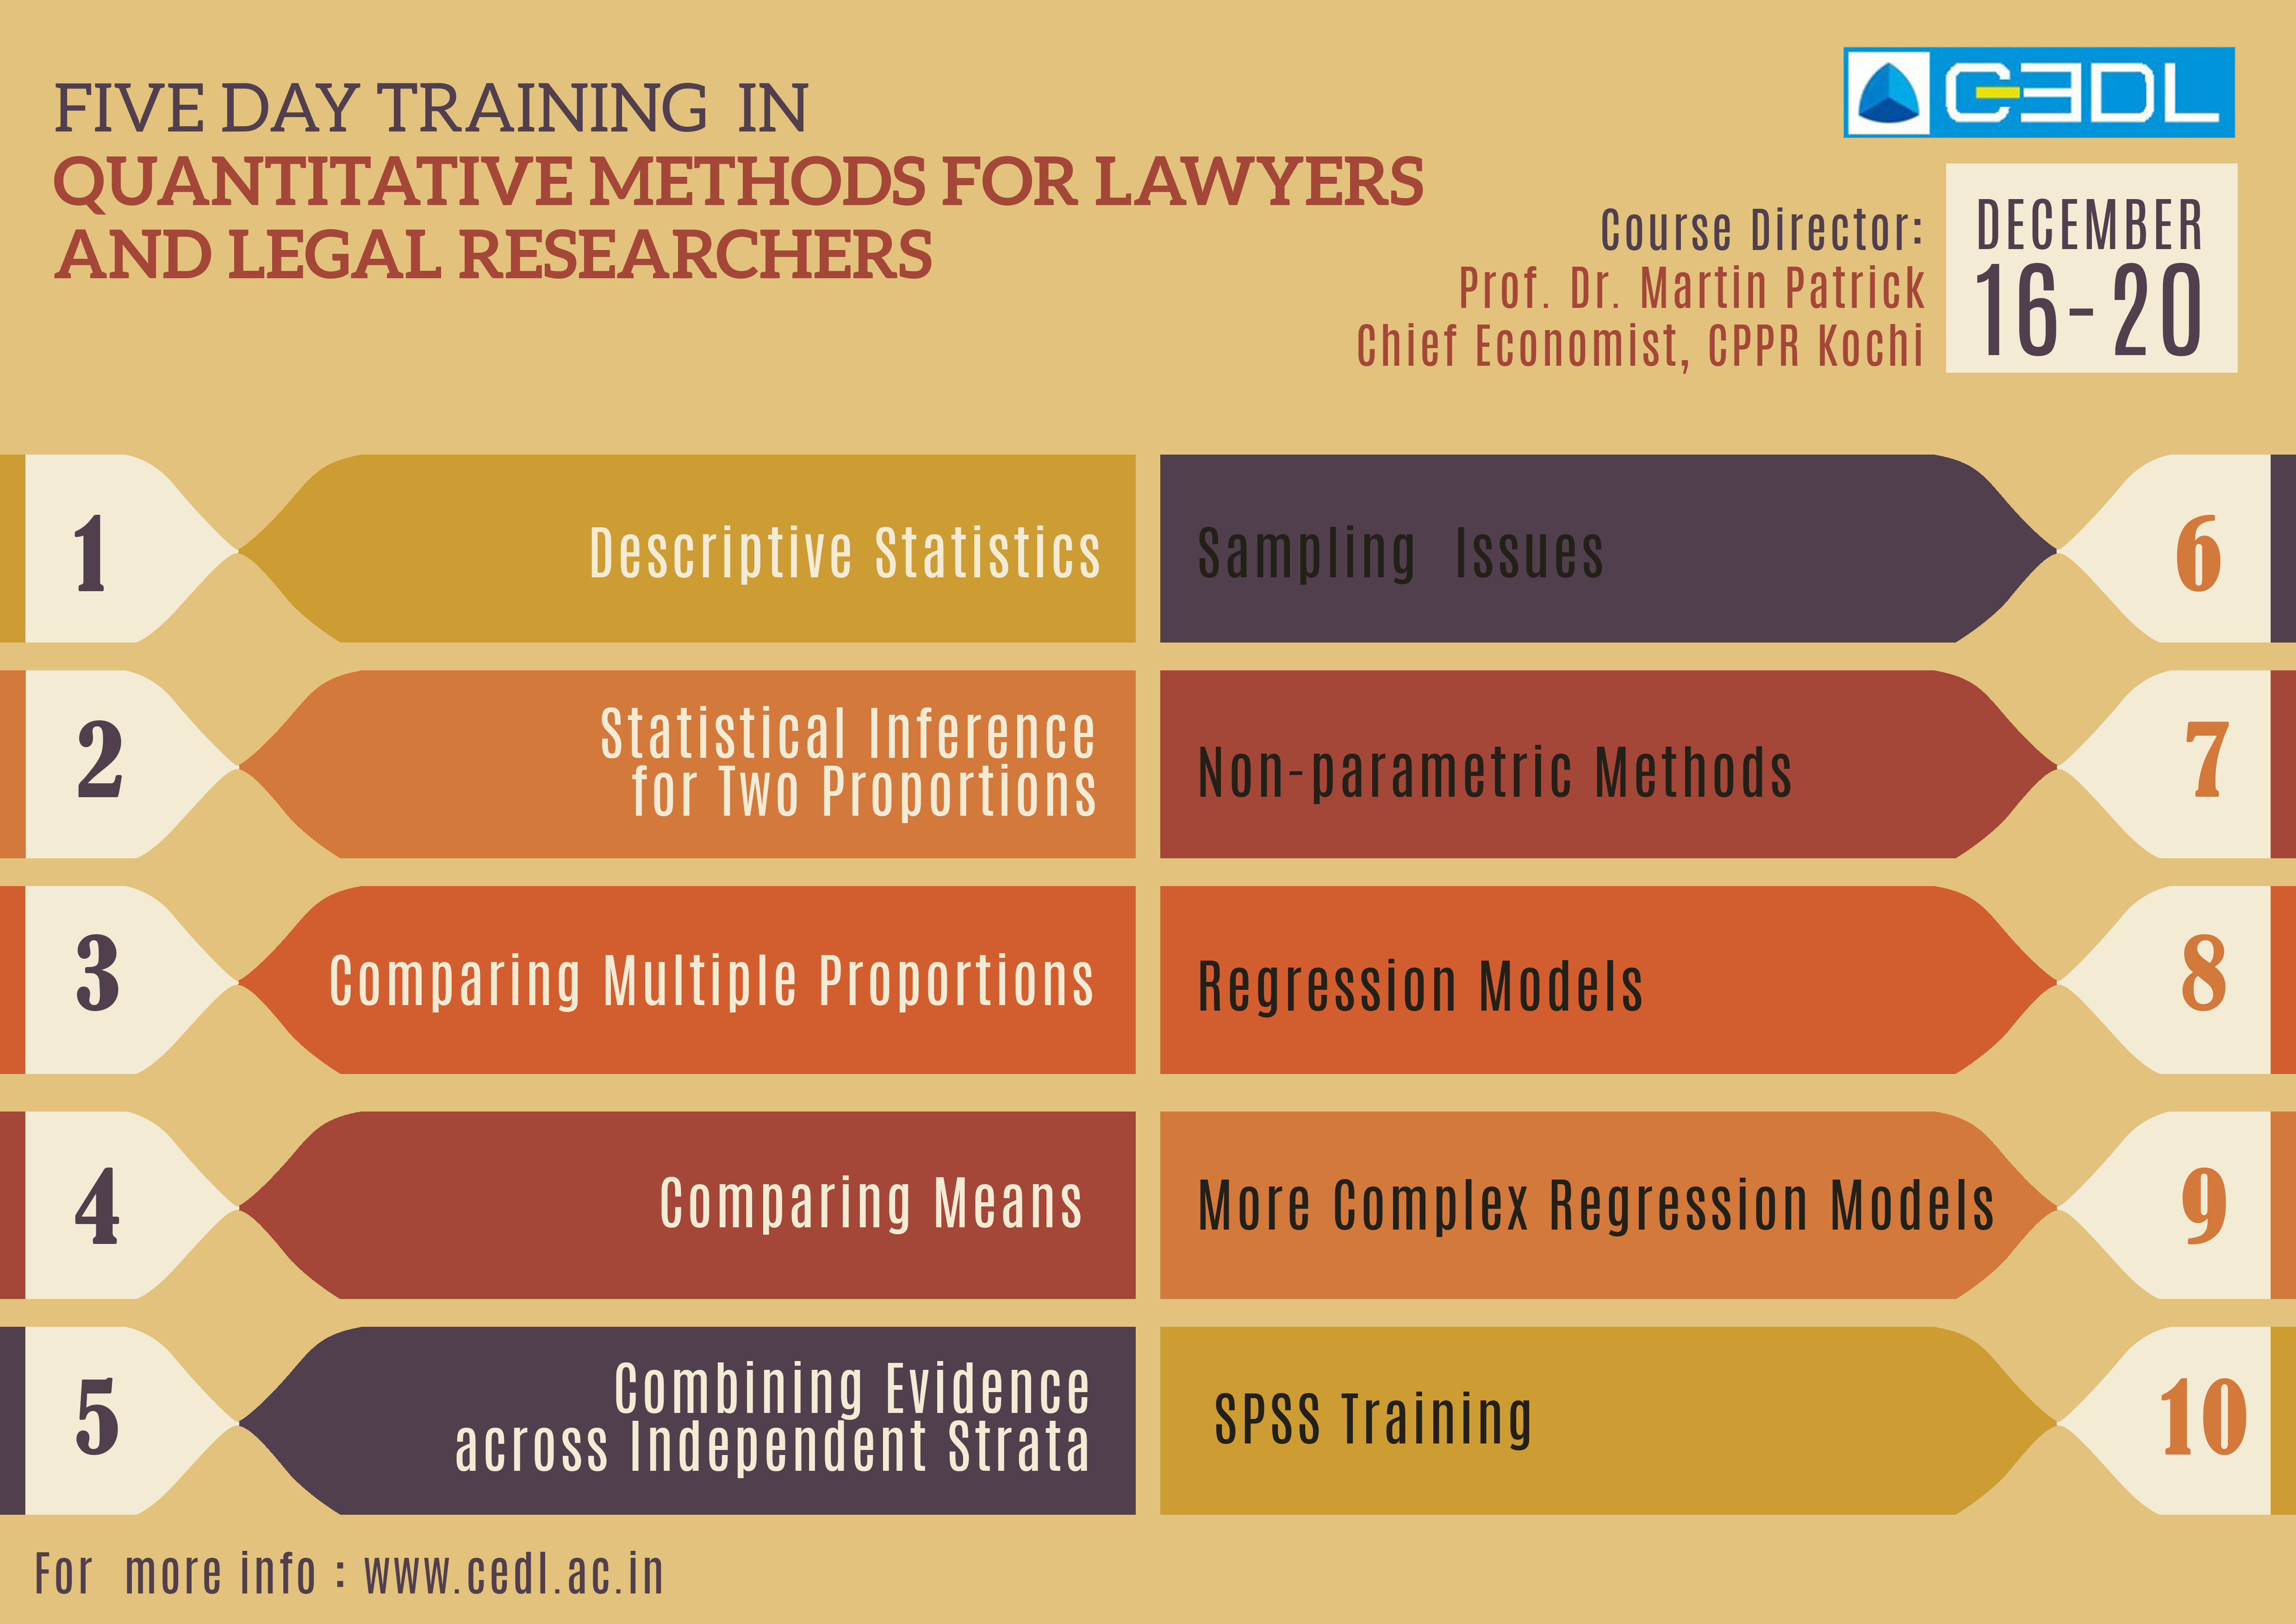 GLC Thrissur's 5 Day Training in Quantitative Methods for Lawyers and Legal Researchers [Dec 16-20, Kerala]: Register Now